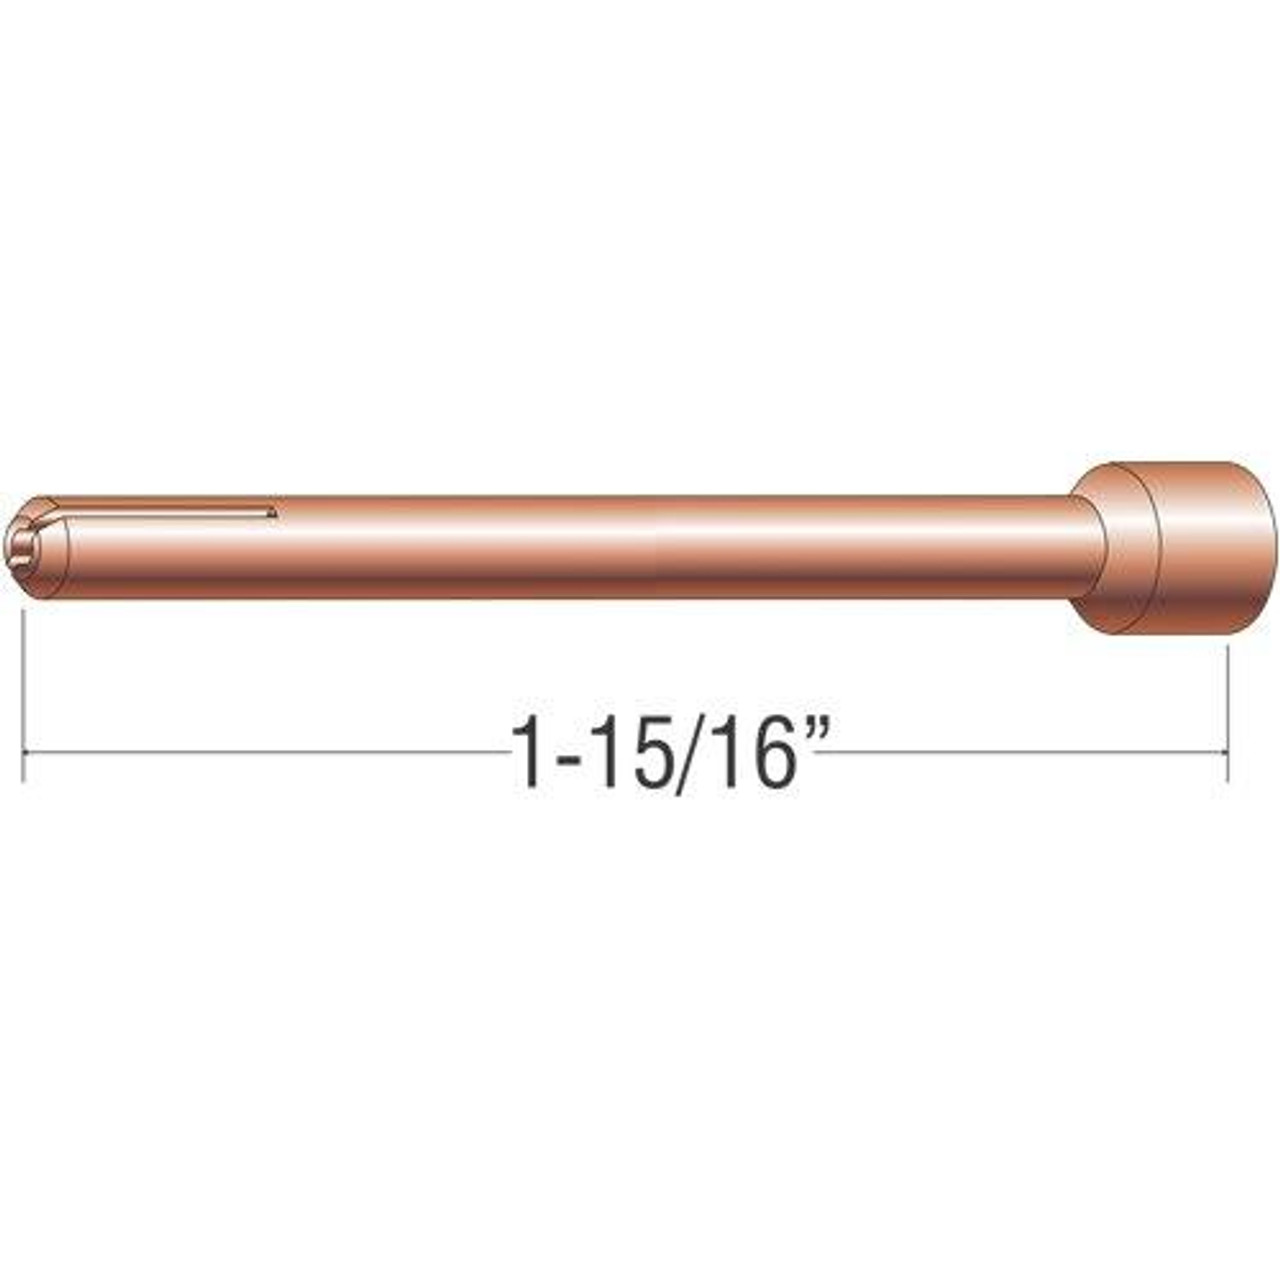 Profax 10N23 Collet 1/16 17-18-26 Series TIG Torch - 10 Pack